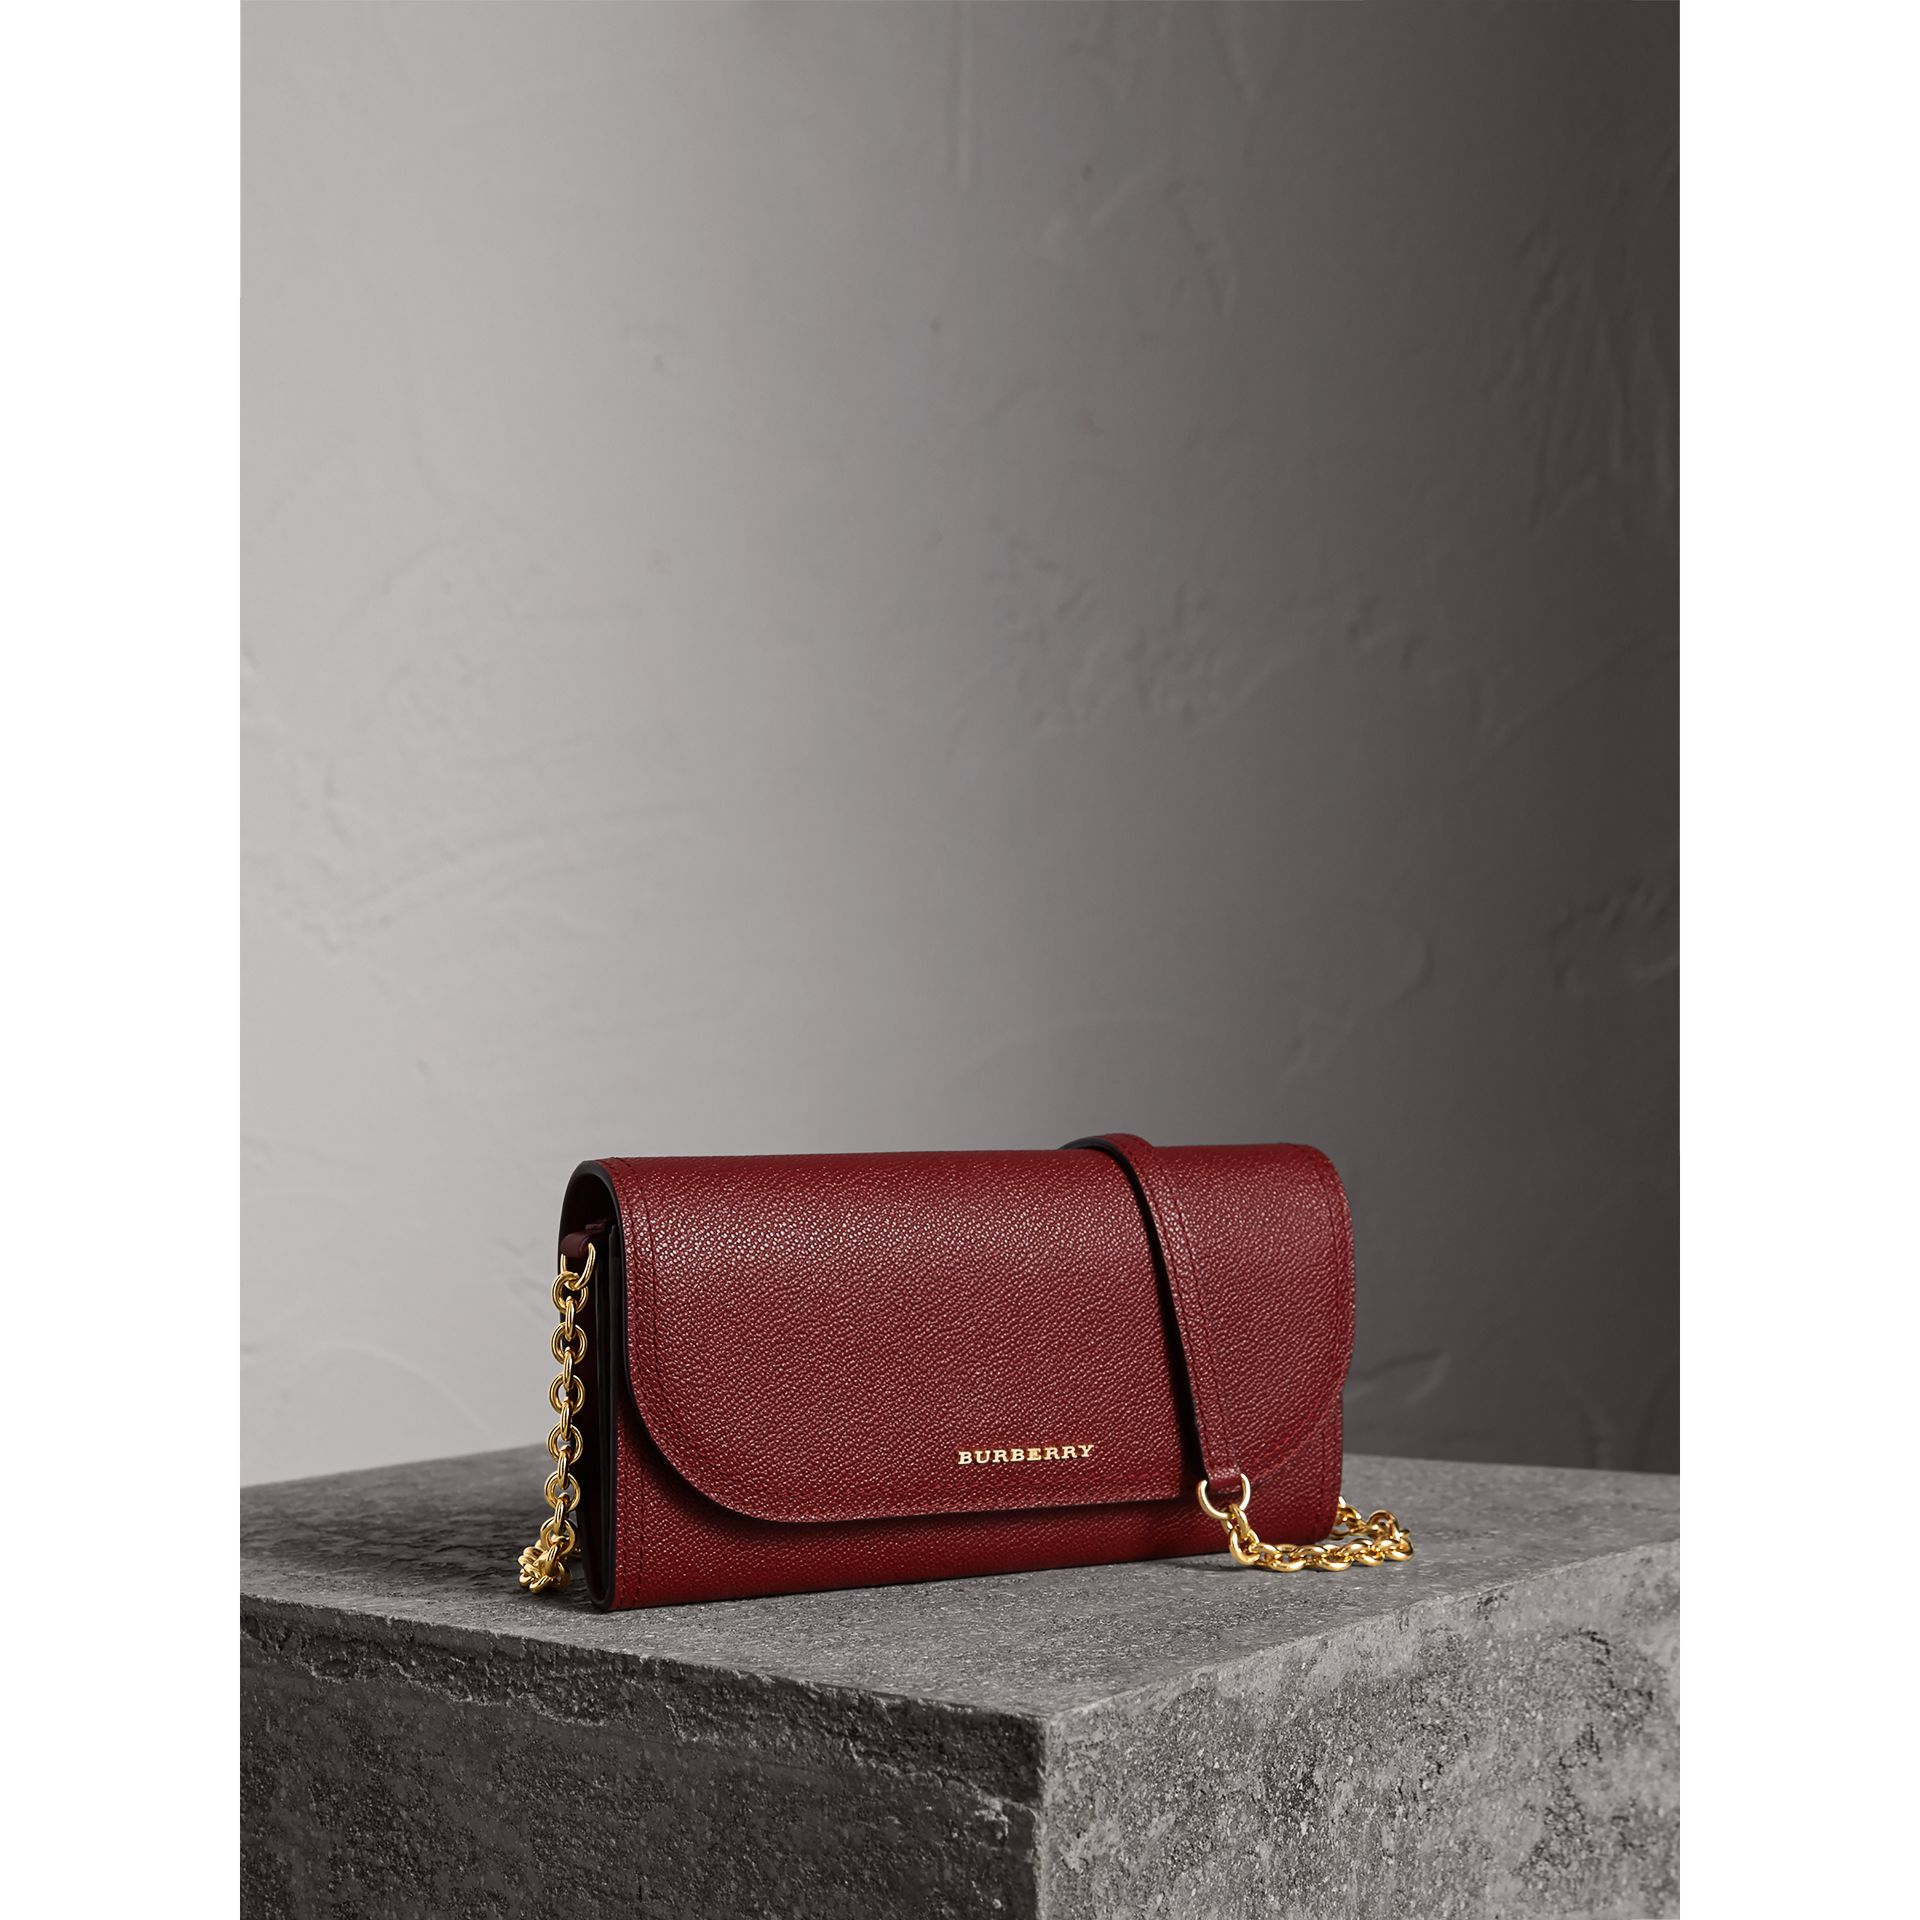 Leather Wallet with Chain in Burgundy - Women | Burberry Hong Kong - gallery image 1